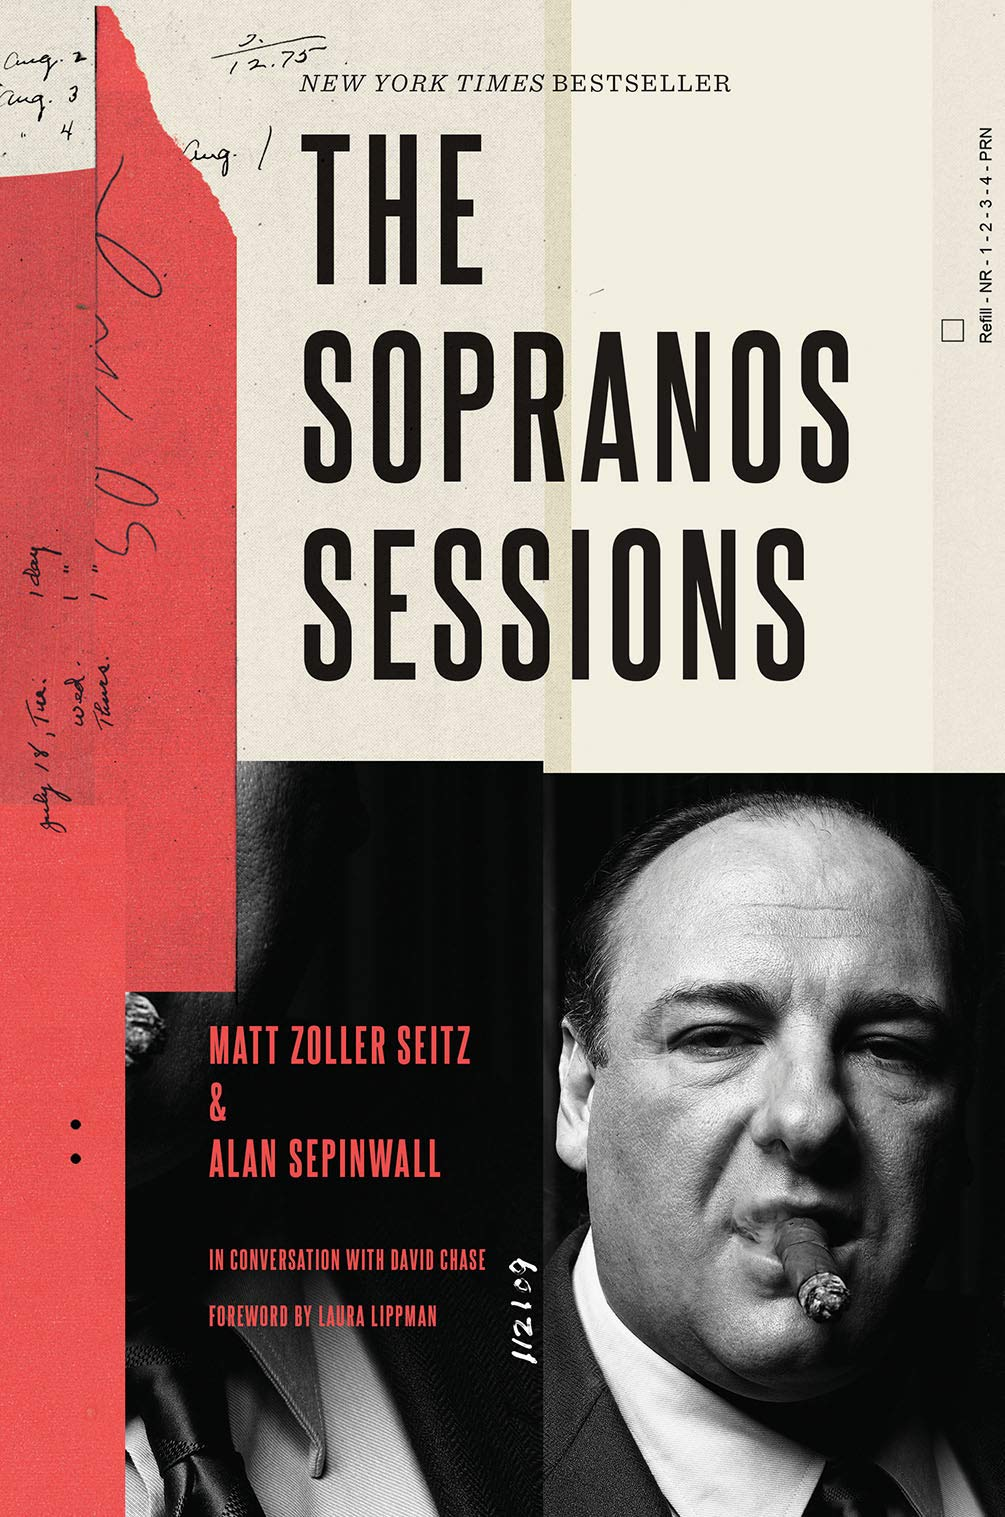 The Sopranos Sessions (Hardcover, Signed by MZS & Alan Sepinwall)